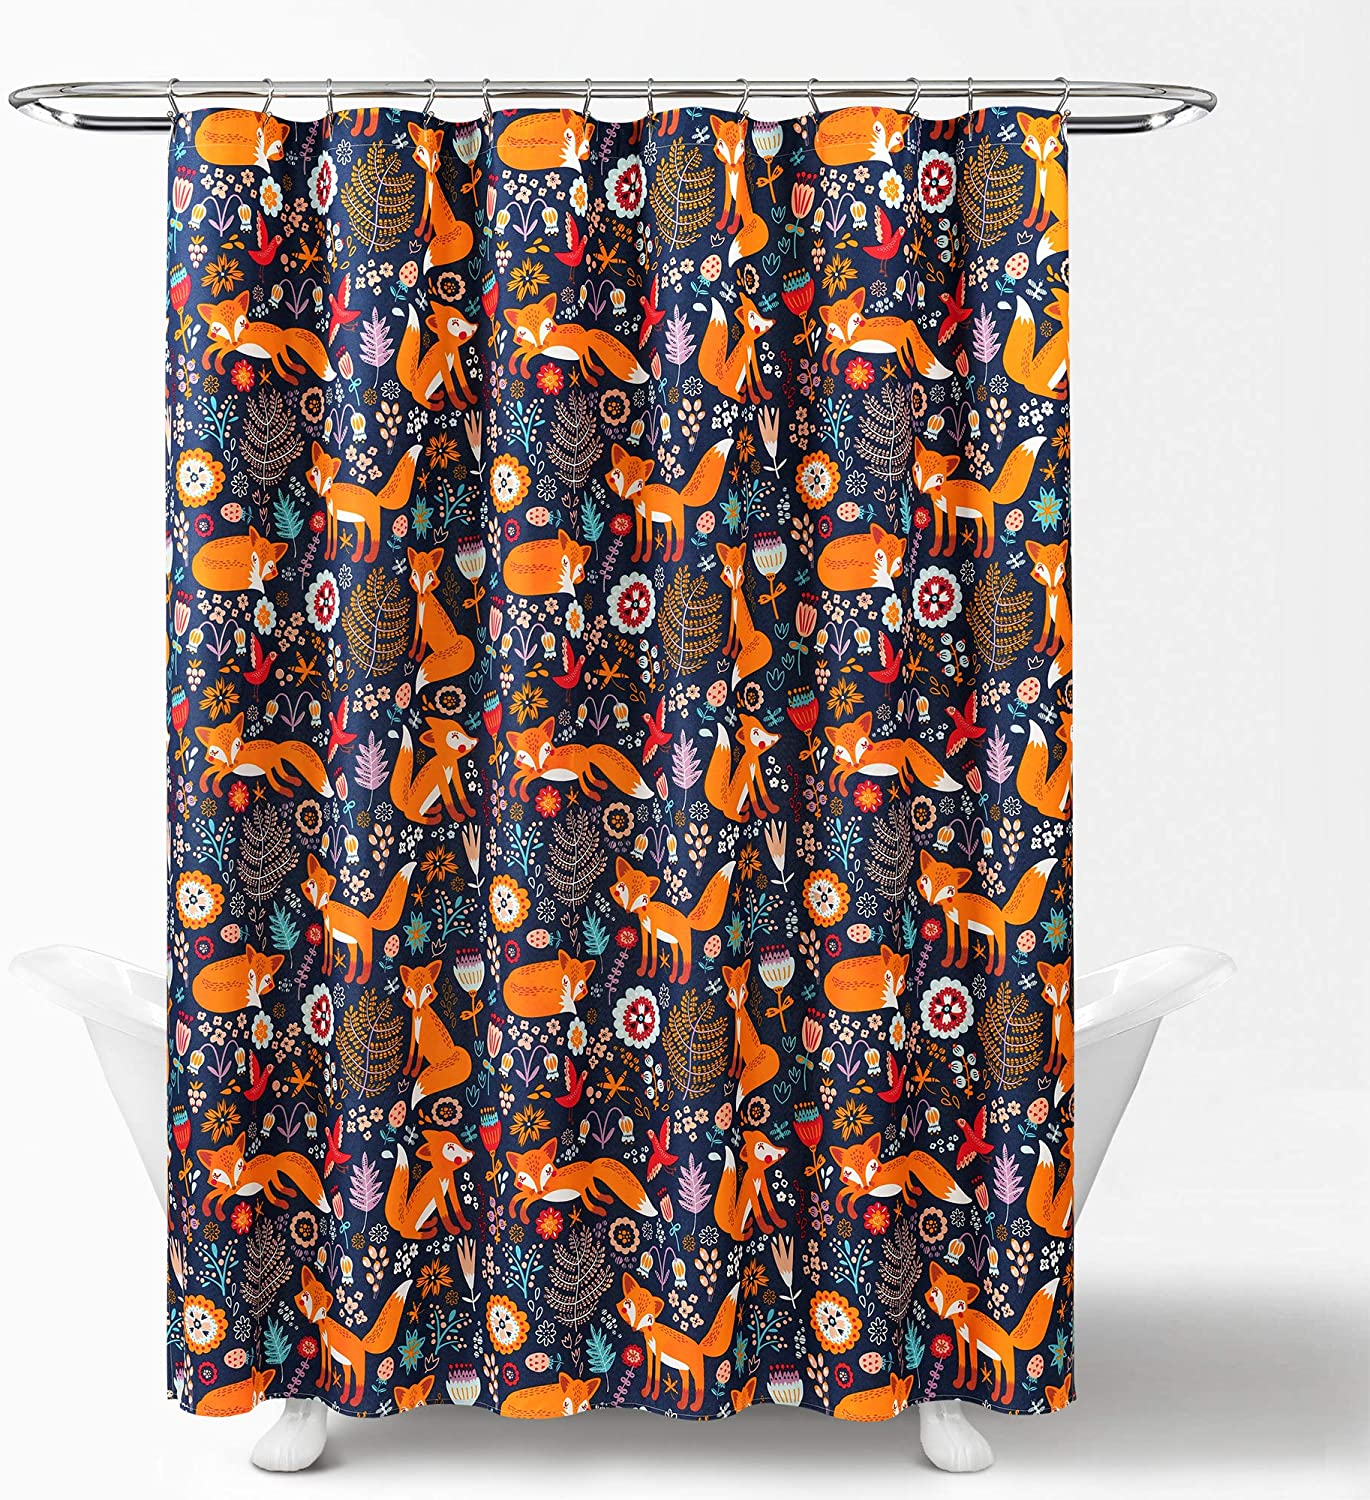 Lush Decor, Navy Pixie Fox Shower Curtain-Fabric Floral Animal Print Design, x 72